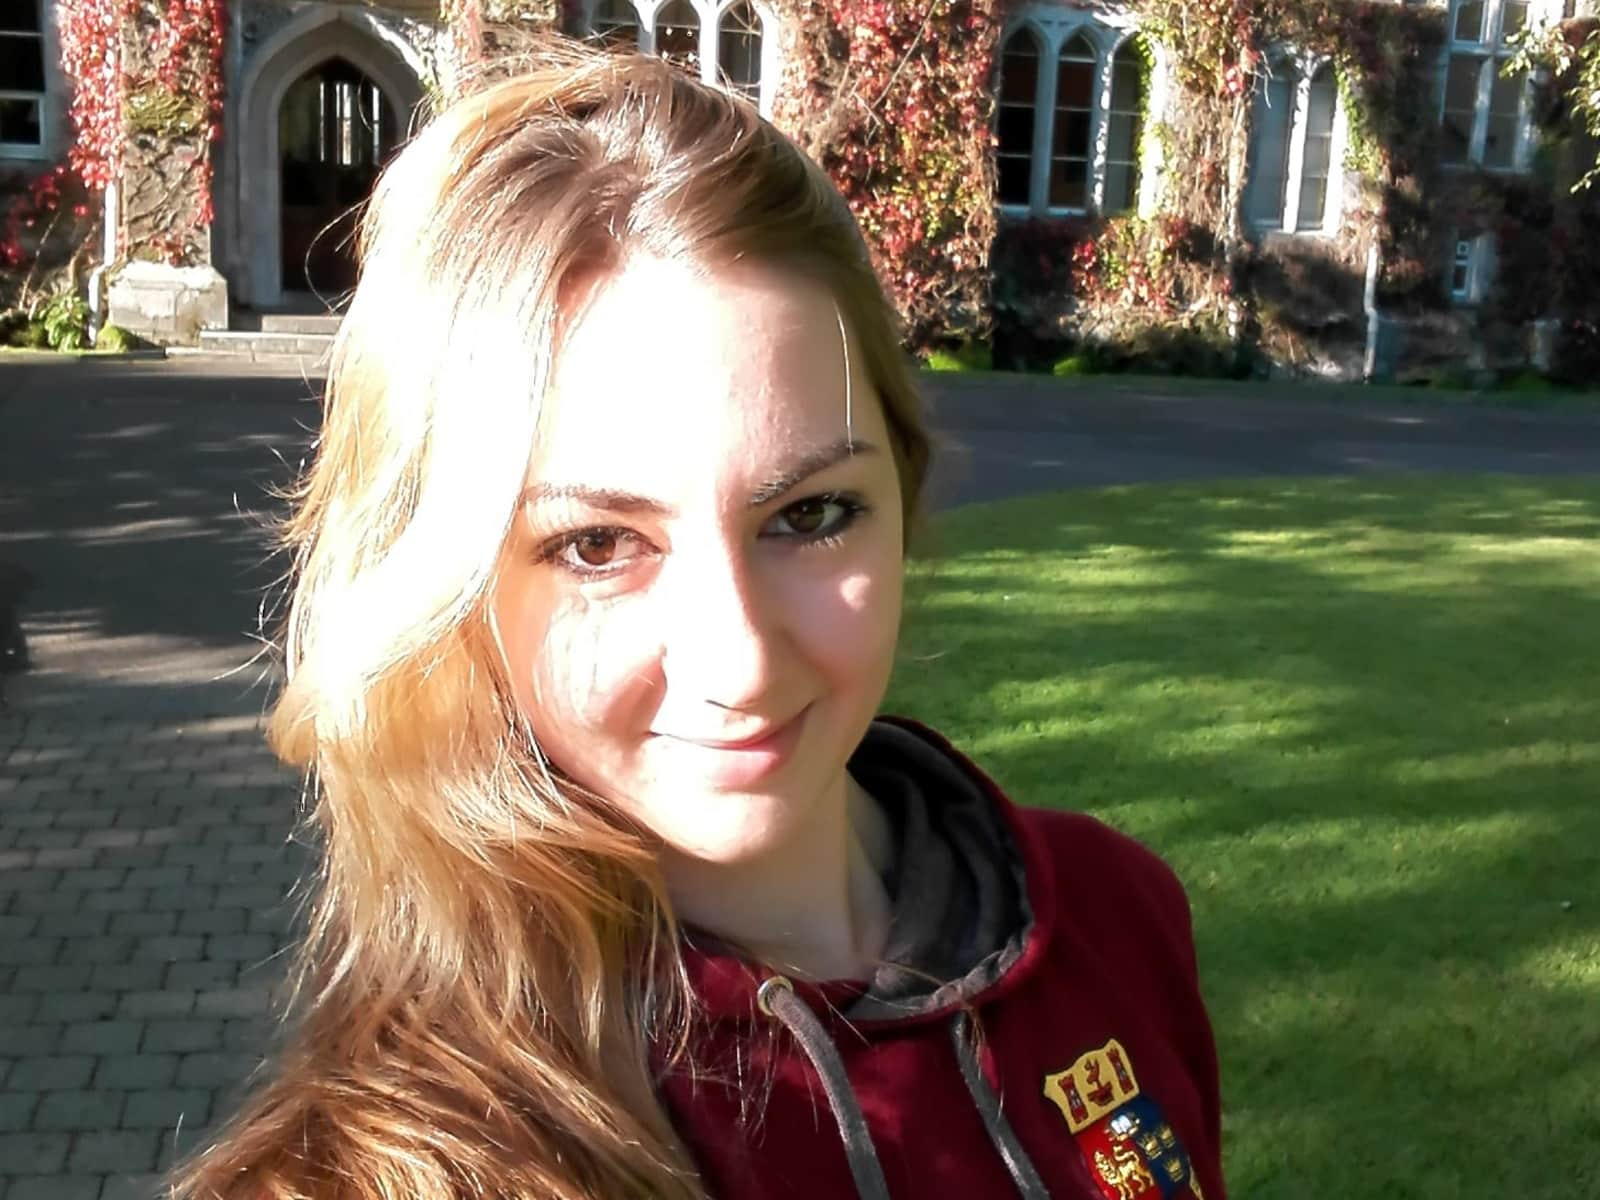 Anna-lena from Kassel, Germany